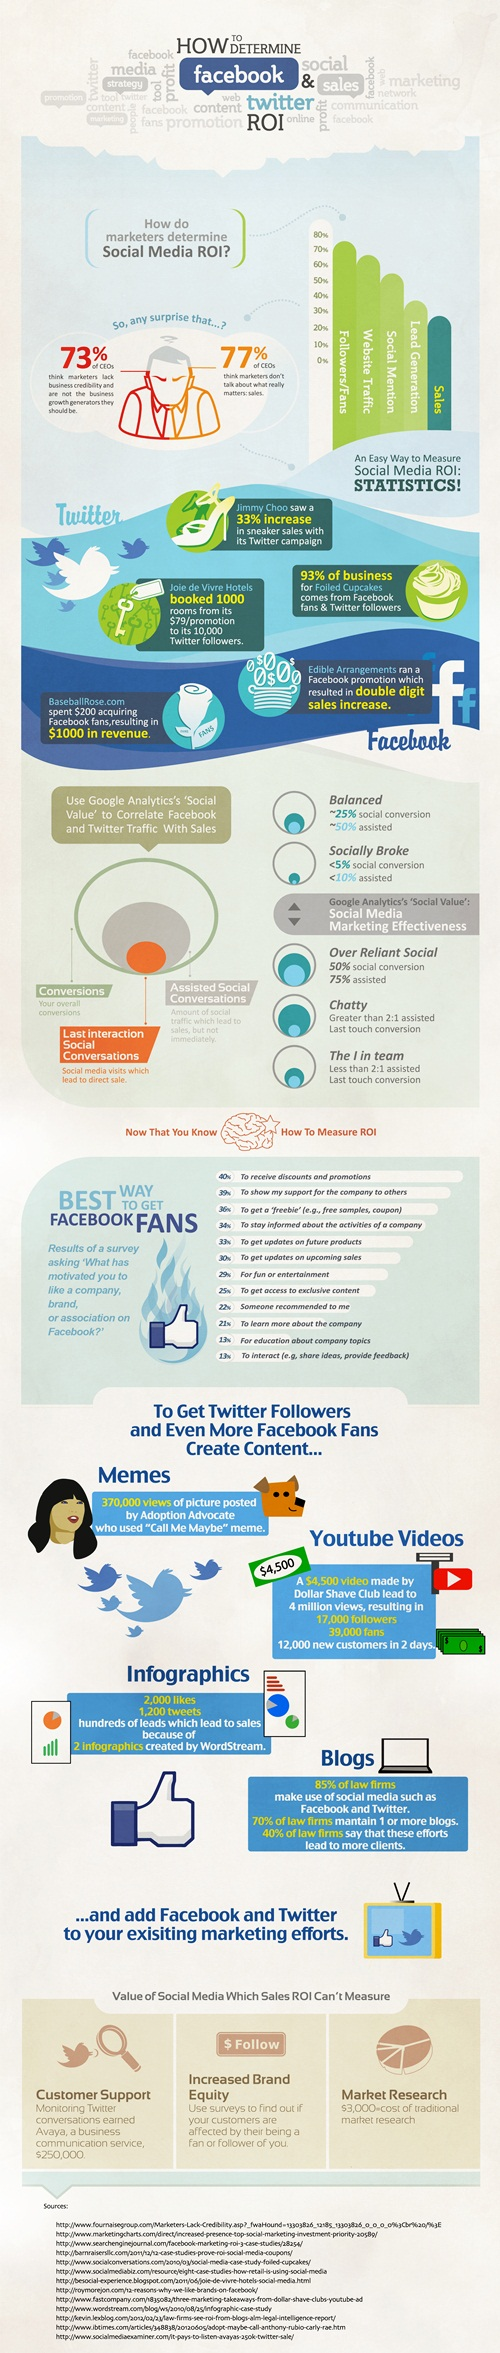 Infographic on Facebook and Twitter advertising ROI